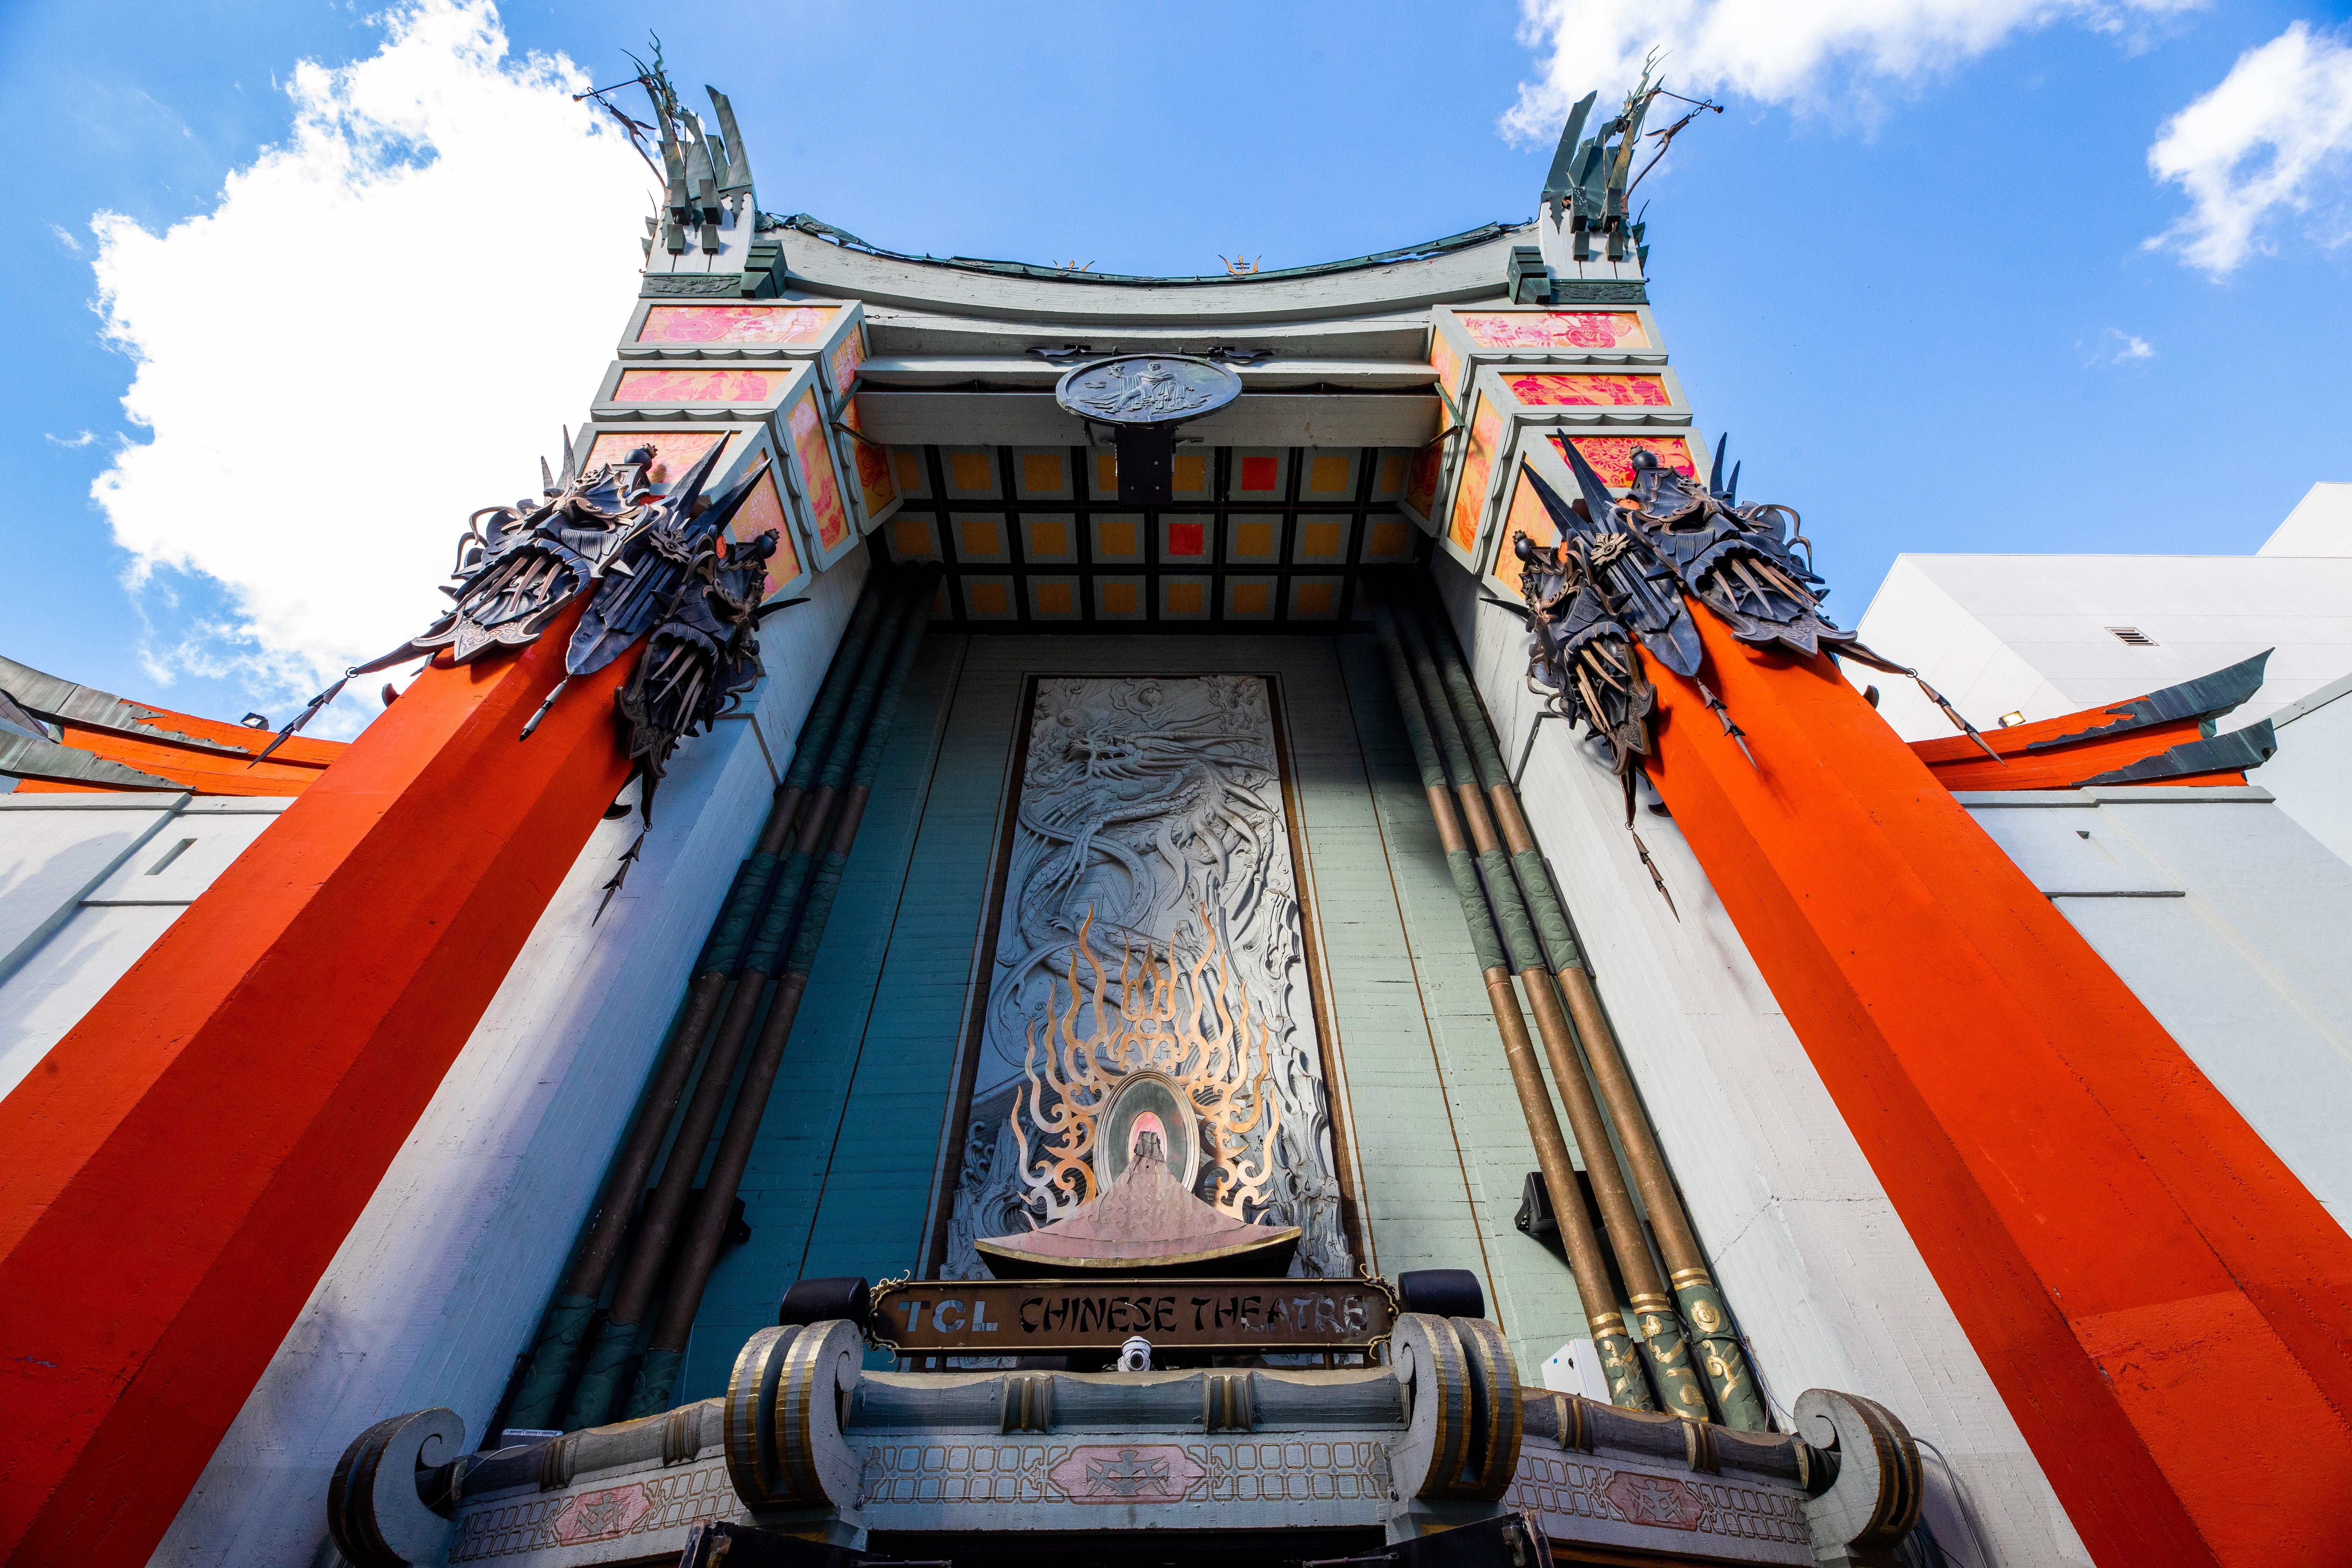 Exterior of the Grauman's Chinese theatre